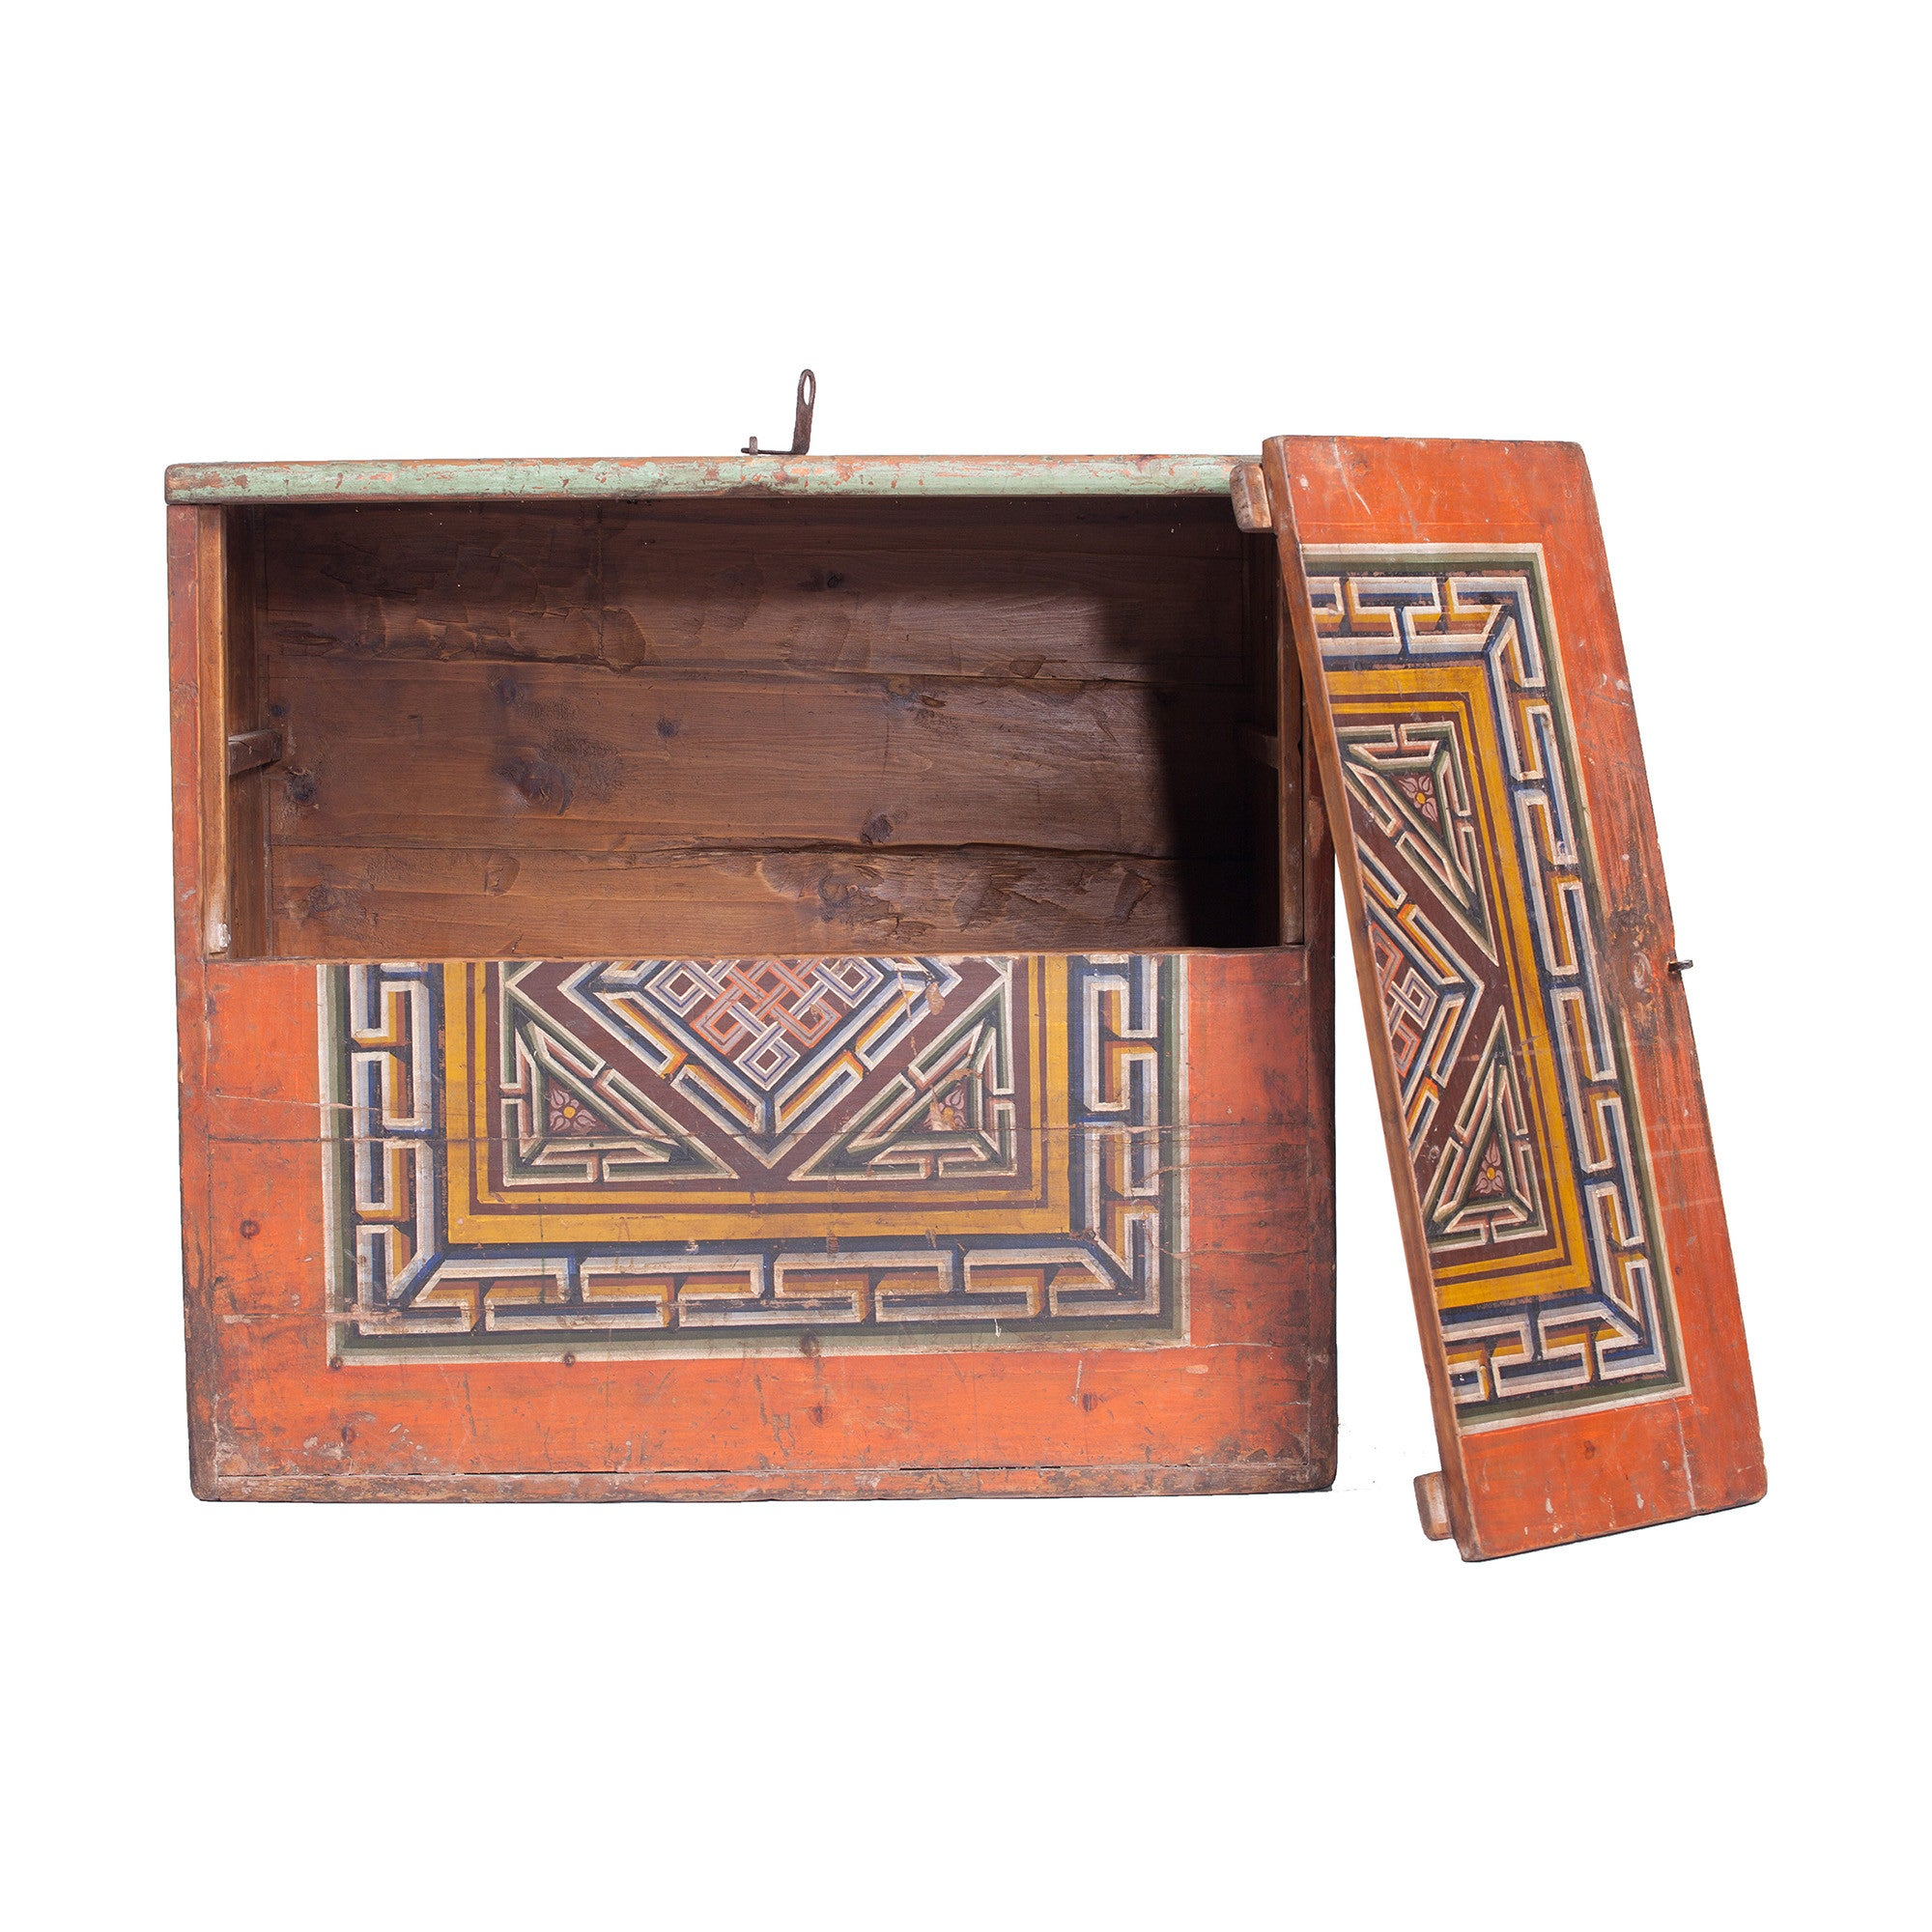 Vintage Mongolian Chest with Endless Knot Symbol one door open